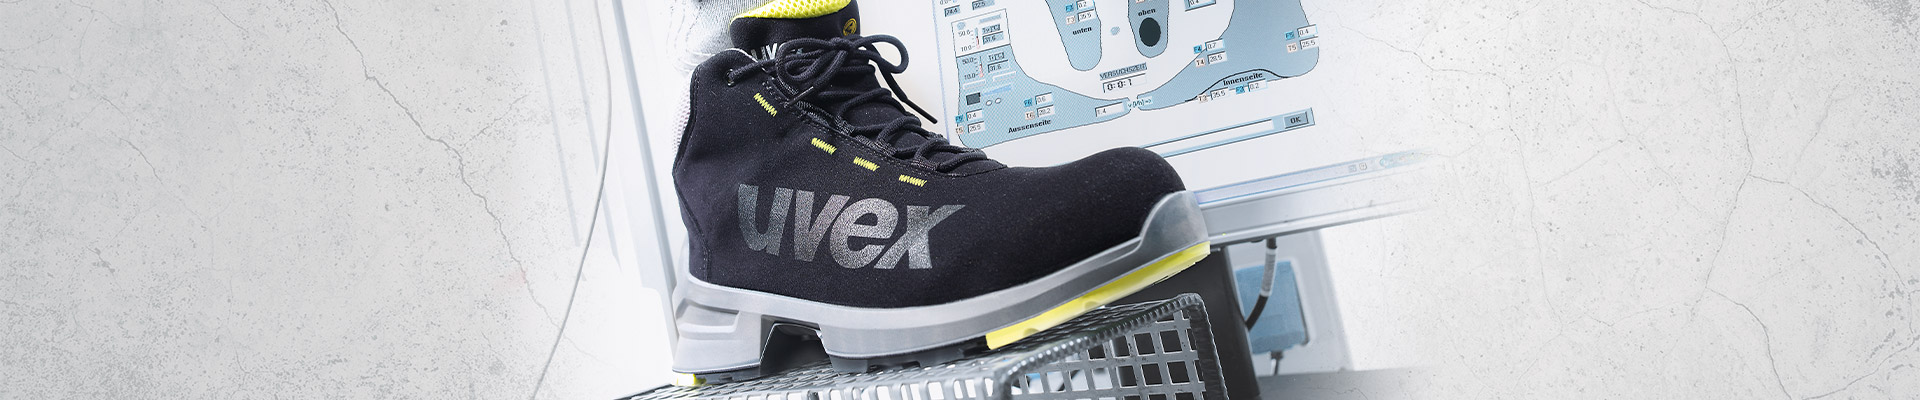 uvex 1 safety boots